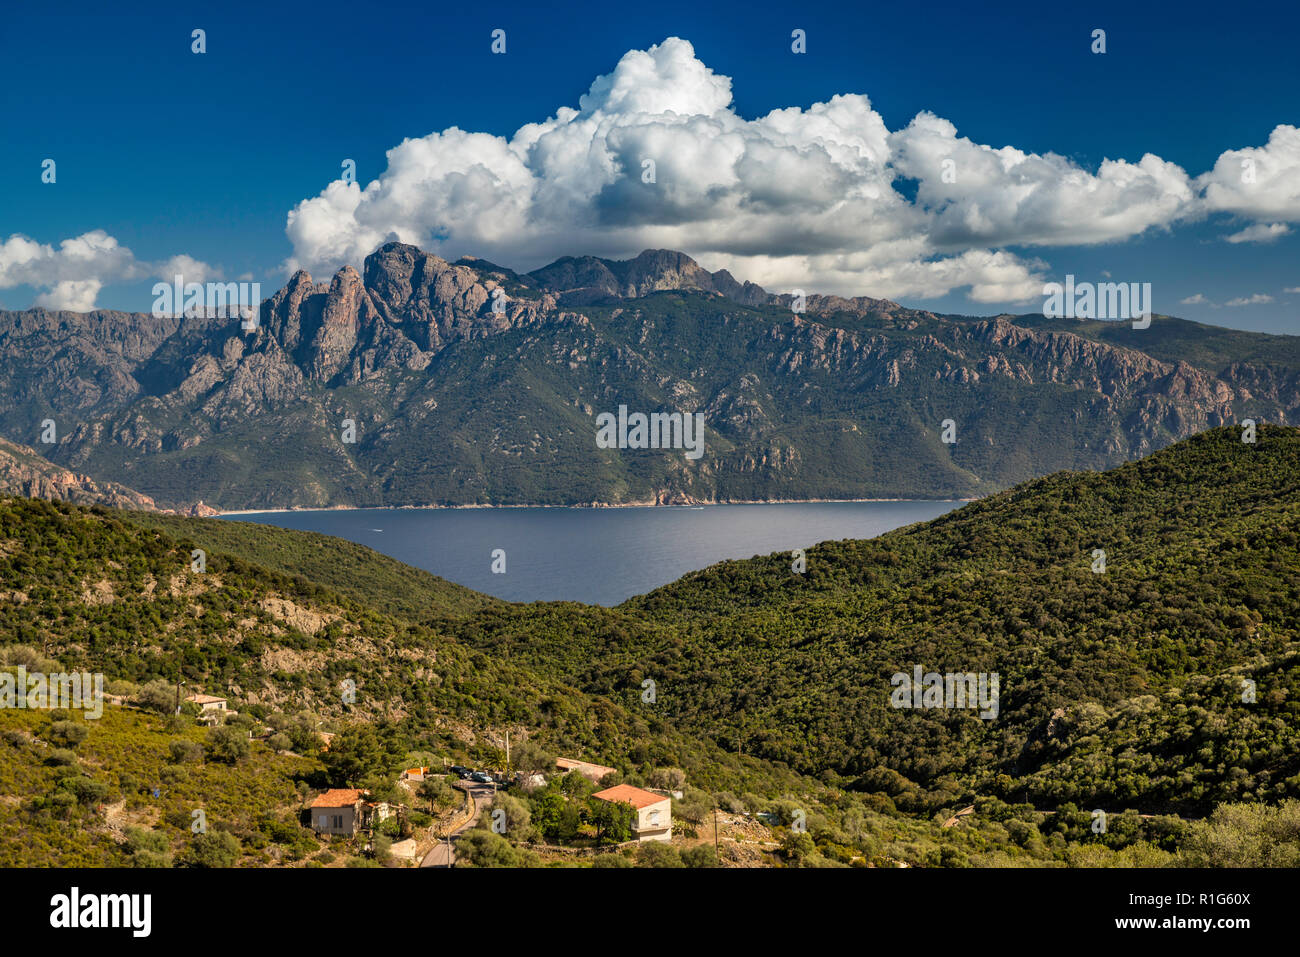 Cumulonimbus clouds over Capo d Orto, Capo di u Vitullo behind, over Golfe de Porto, from Col de la Croix viewpoint, Corse-du-Sud, Corsica, France - Stock Image